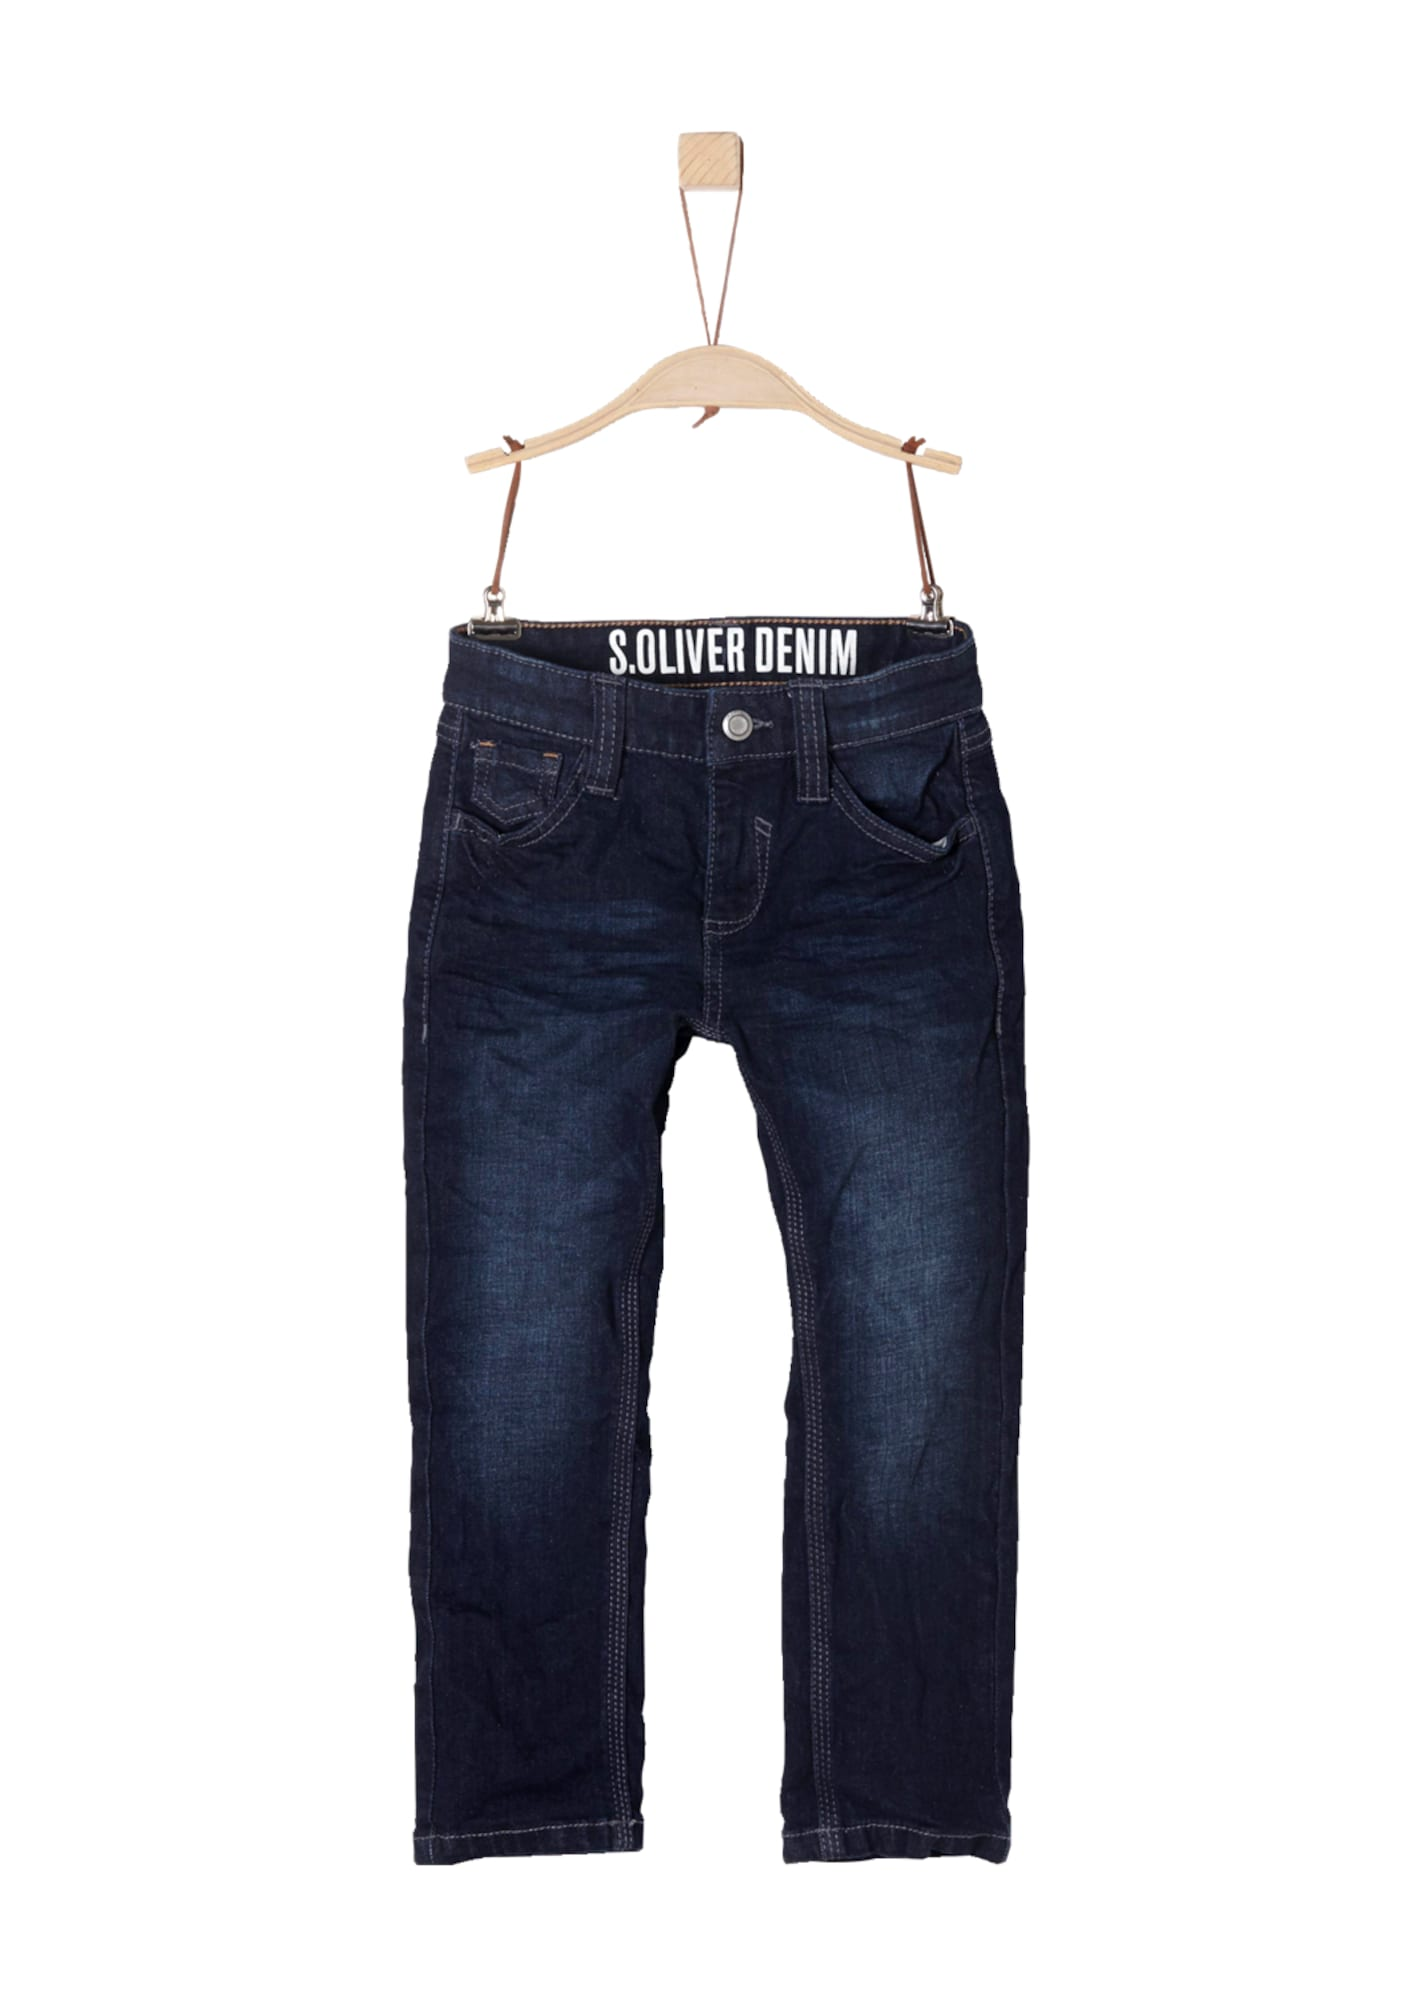 Miniboyhosen - Stretchjeans - Onlineshop ABOUT YOU